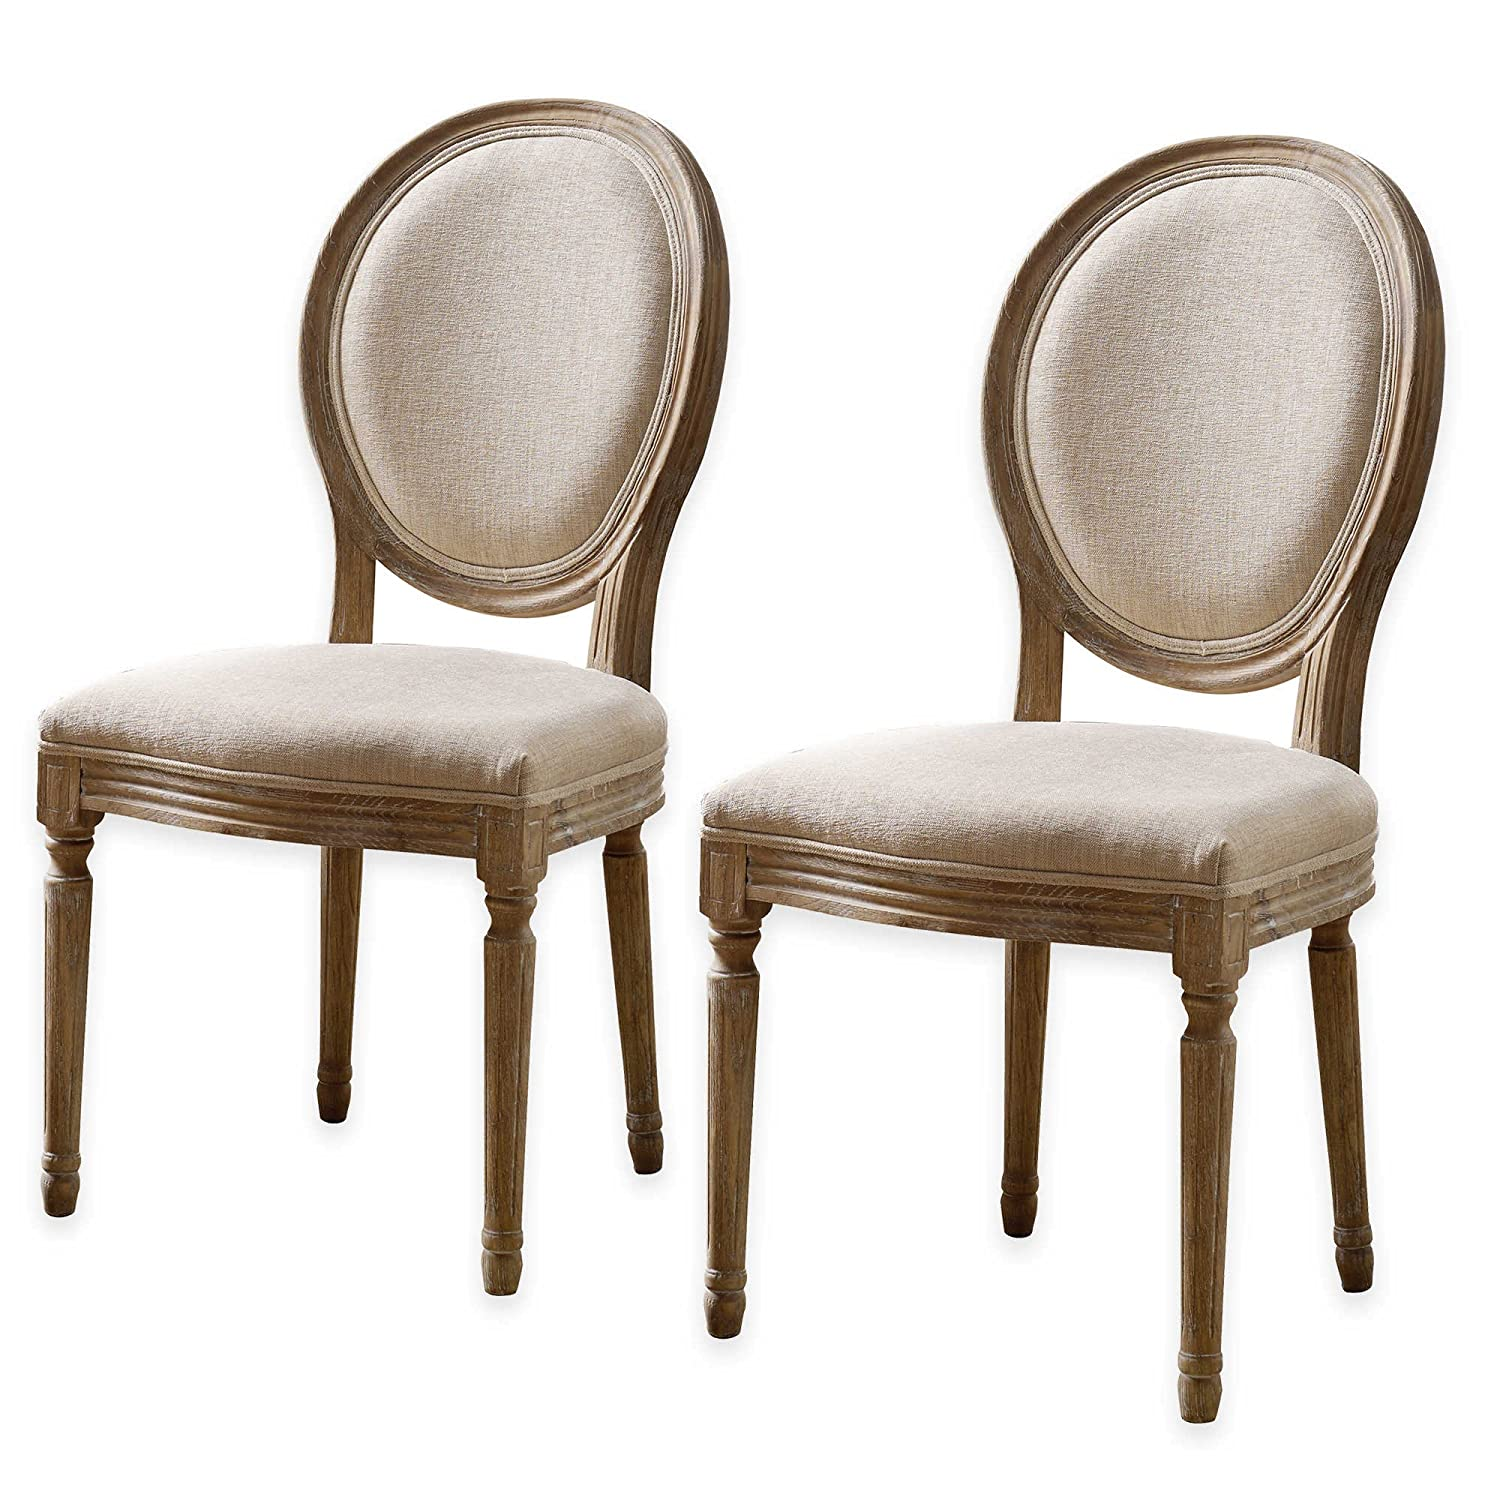 Amazon Shiraz Linen Oval Back Chairs in Natural Set of 2